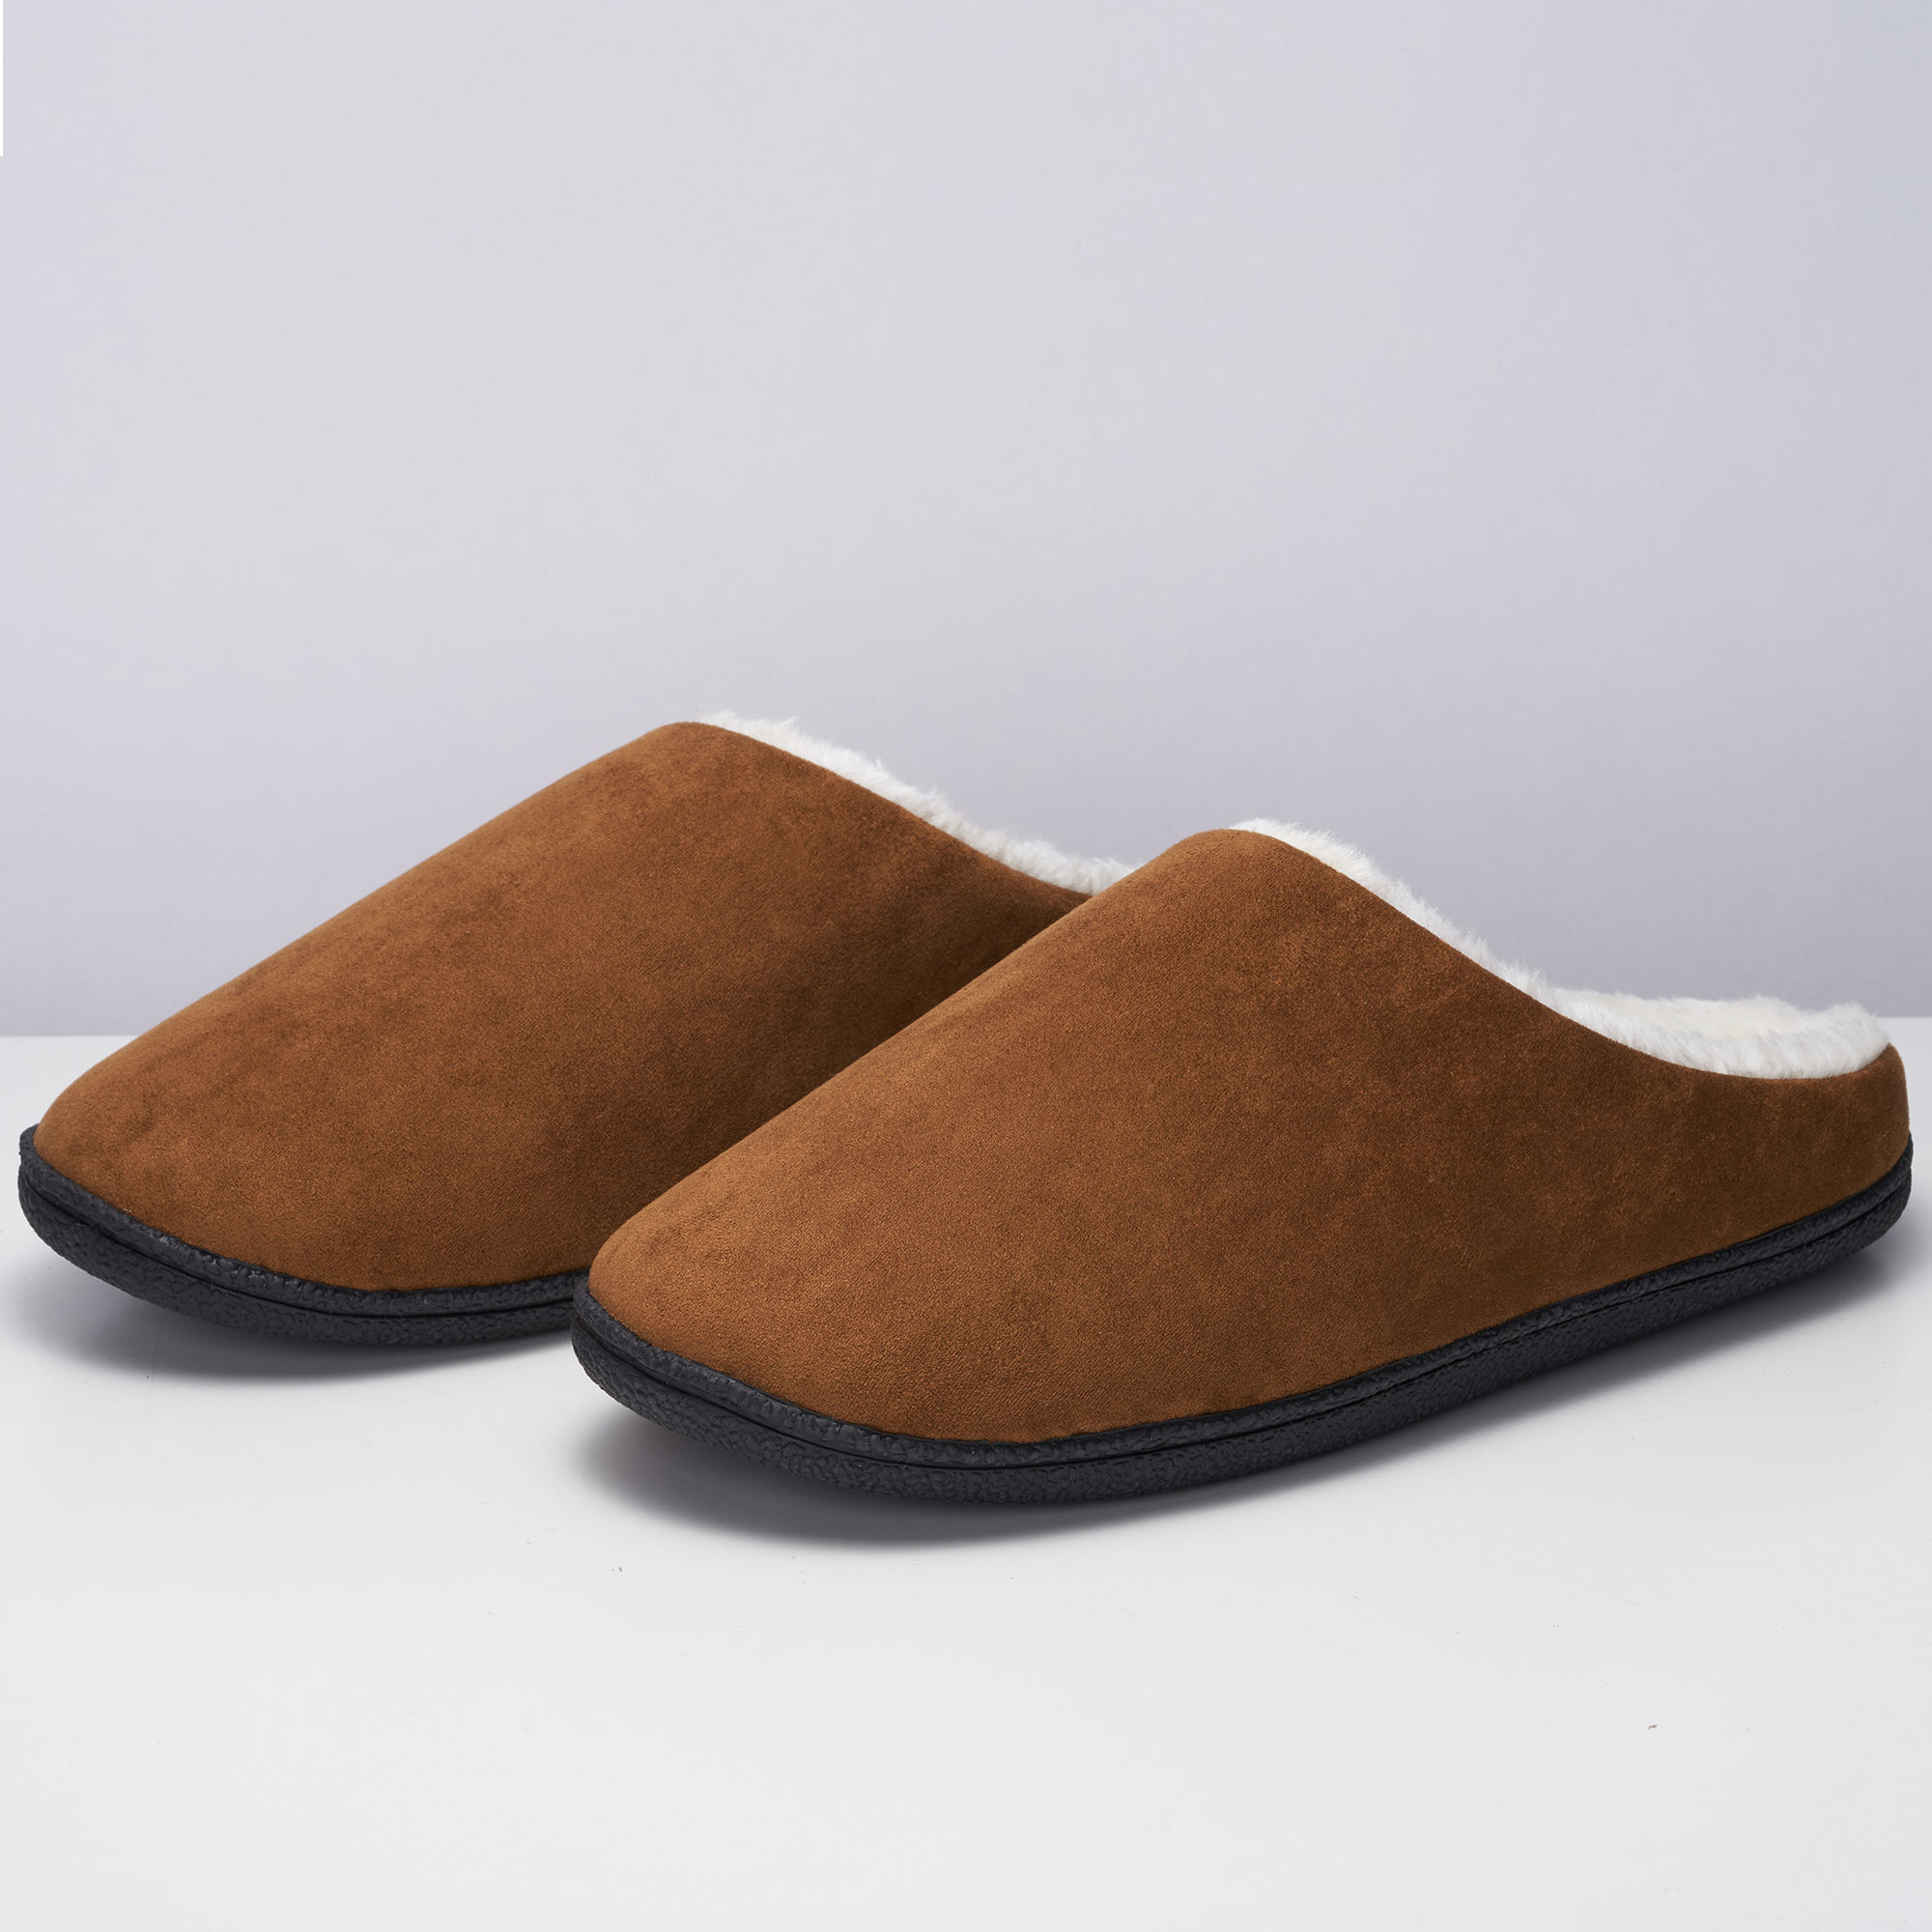 Alpine-Swiss-Mens-Memory-Foam-Clog-Slippers-Indoor-Comfort-Slip-On-House-Shoes thumbnail 23